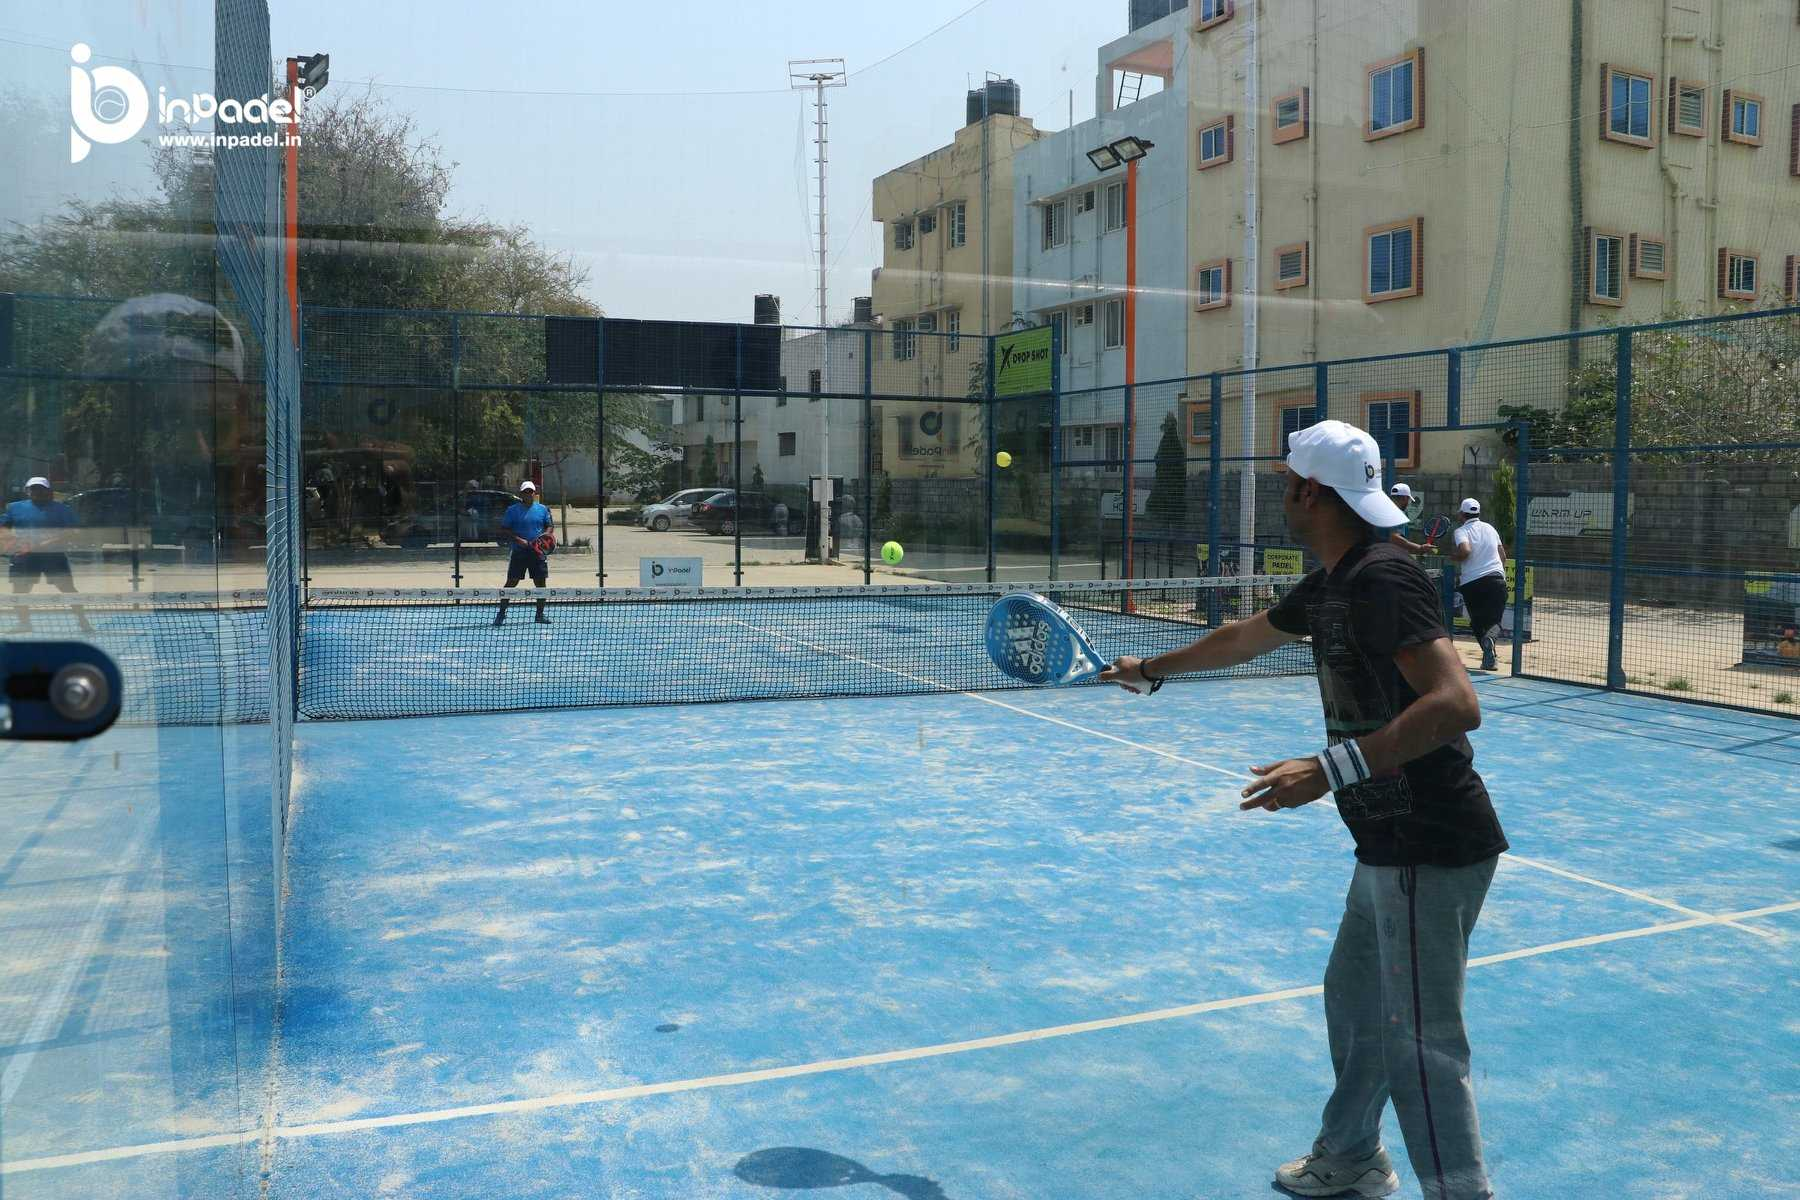 InPadel 1Yr Celebration of Padel in INDIA - Padel - Padel India (11)